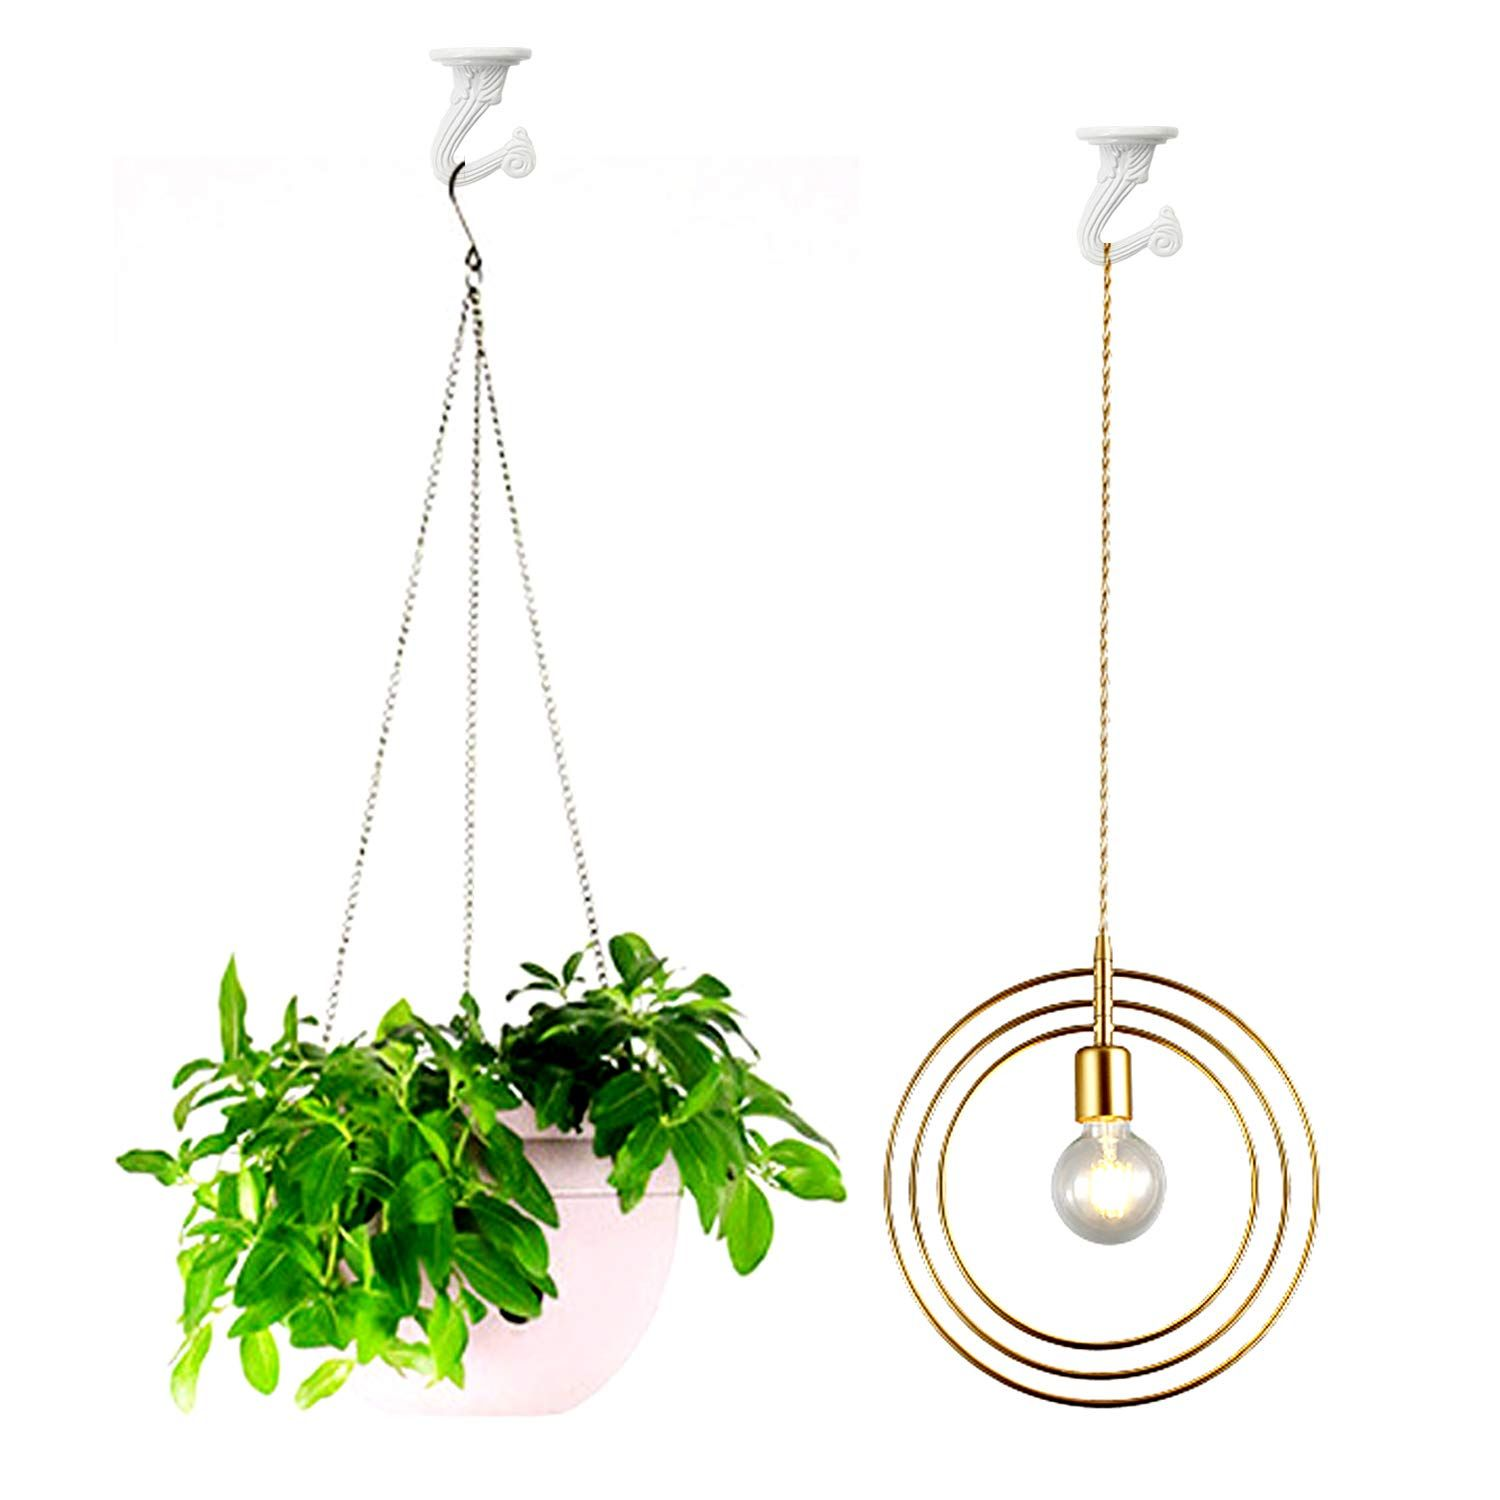 10 Sets Ceiling Hooks Heavy Duty Swag Hook With Hardware For